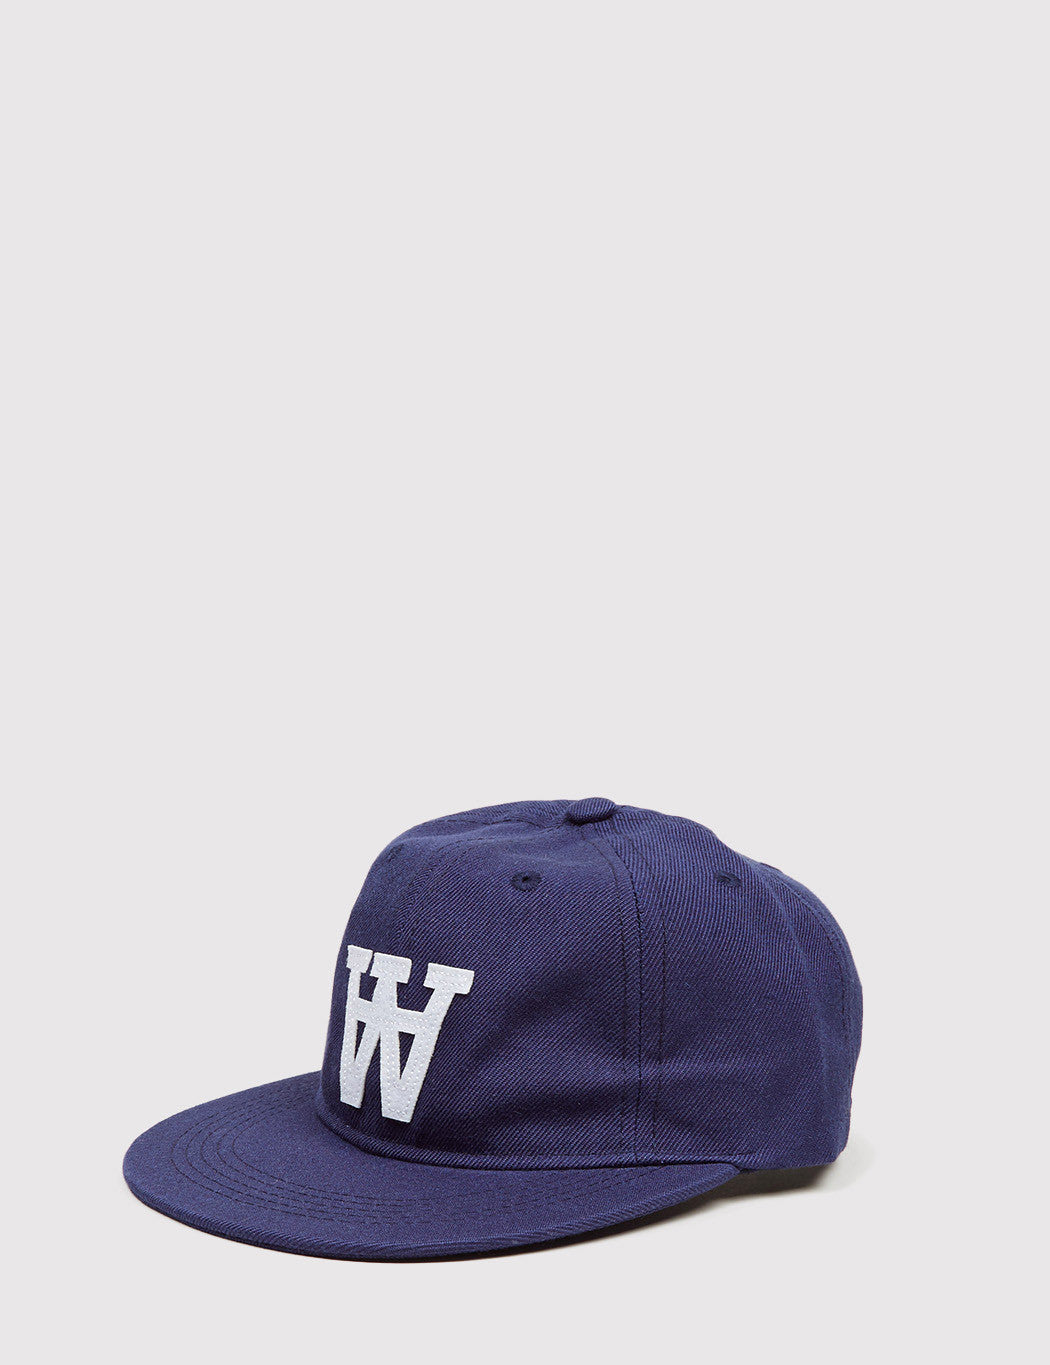 Wood Wood Baseball Cap - Navy